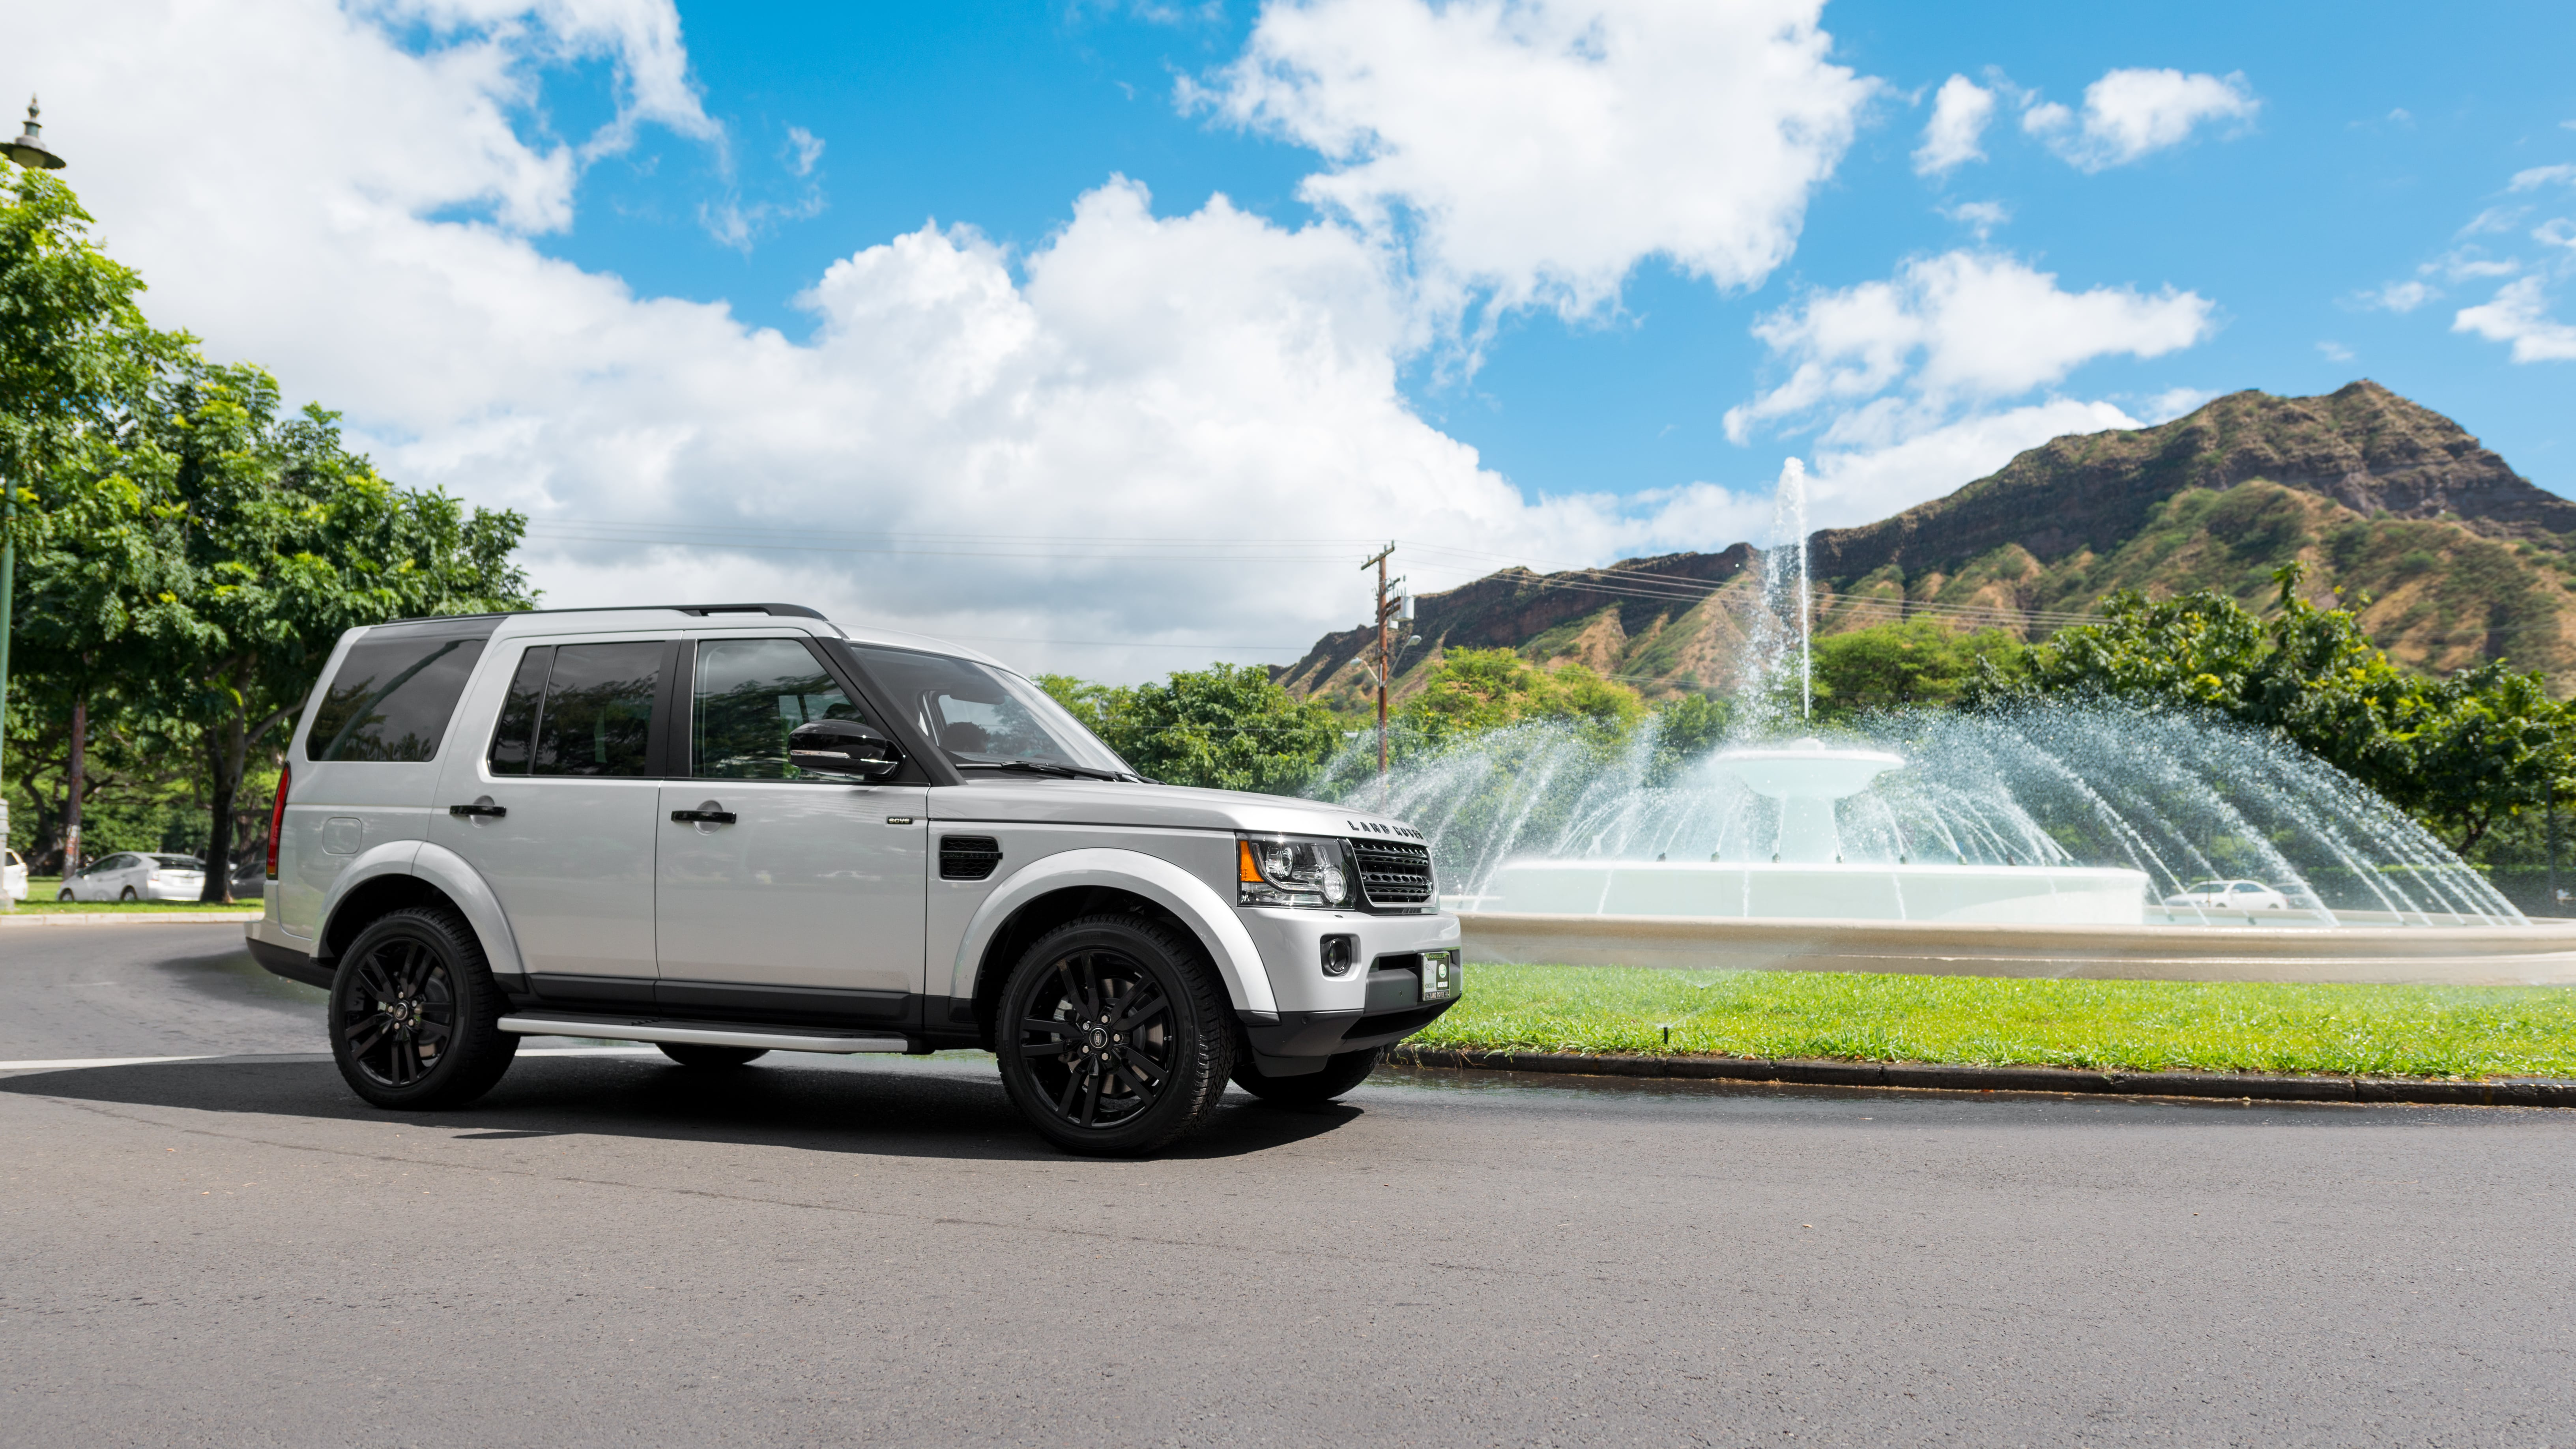 for name hse click rover automobiles image attachment forums hd size package surround system version larger options landrover lux views camera rare sale all land img price